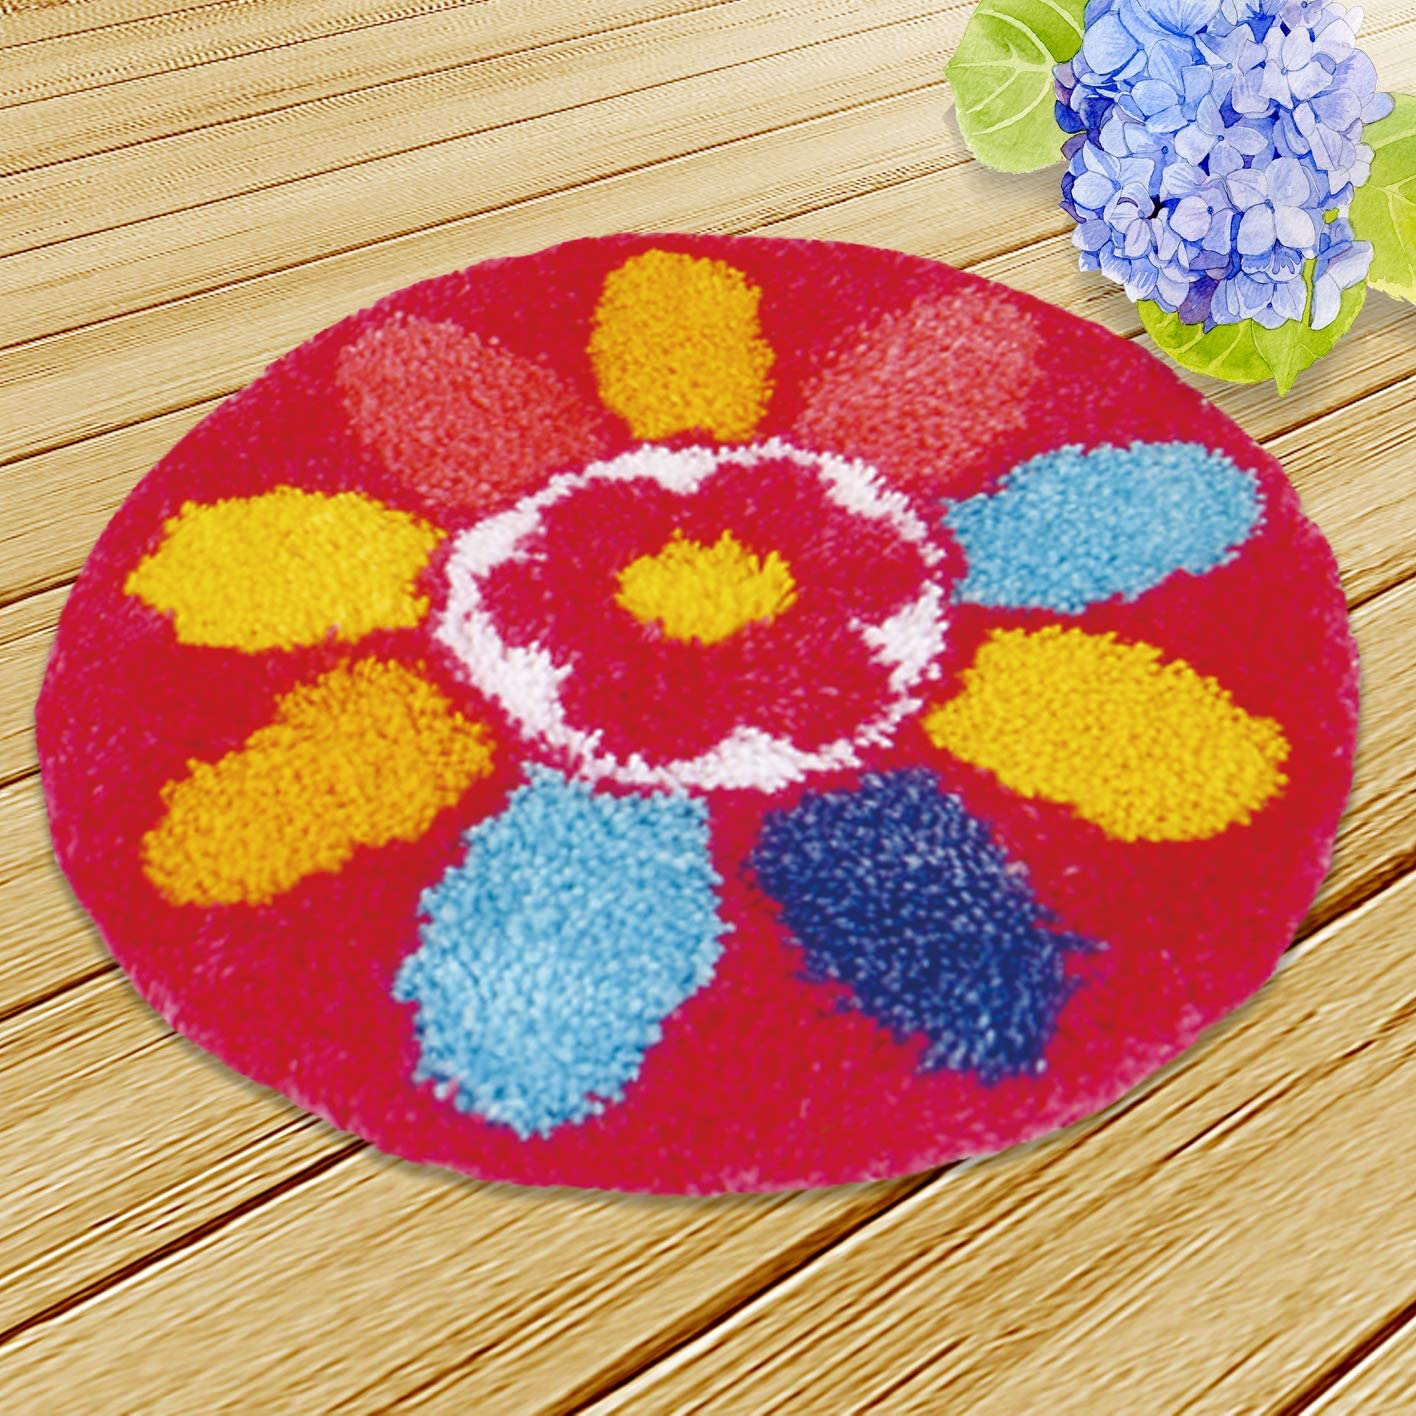 Latch Hook Kit DIY Rug Carpet Handcraft Cushion Embroidery Set Crocheting for Kids /& Adults Animal//Flower Pattern Daisy, 20x20 inch